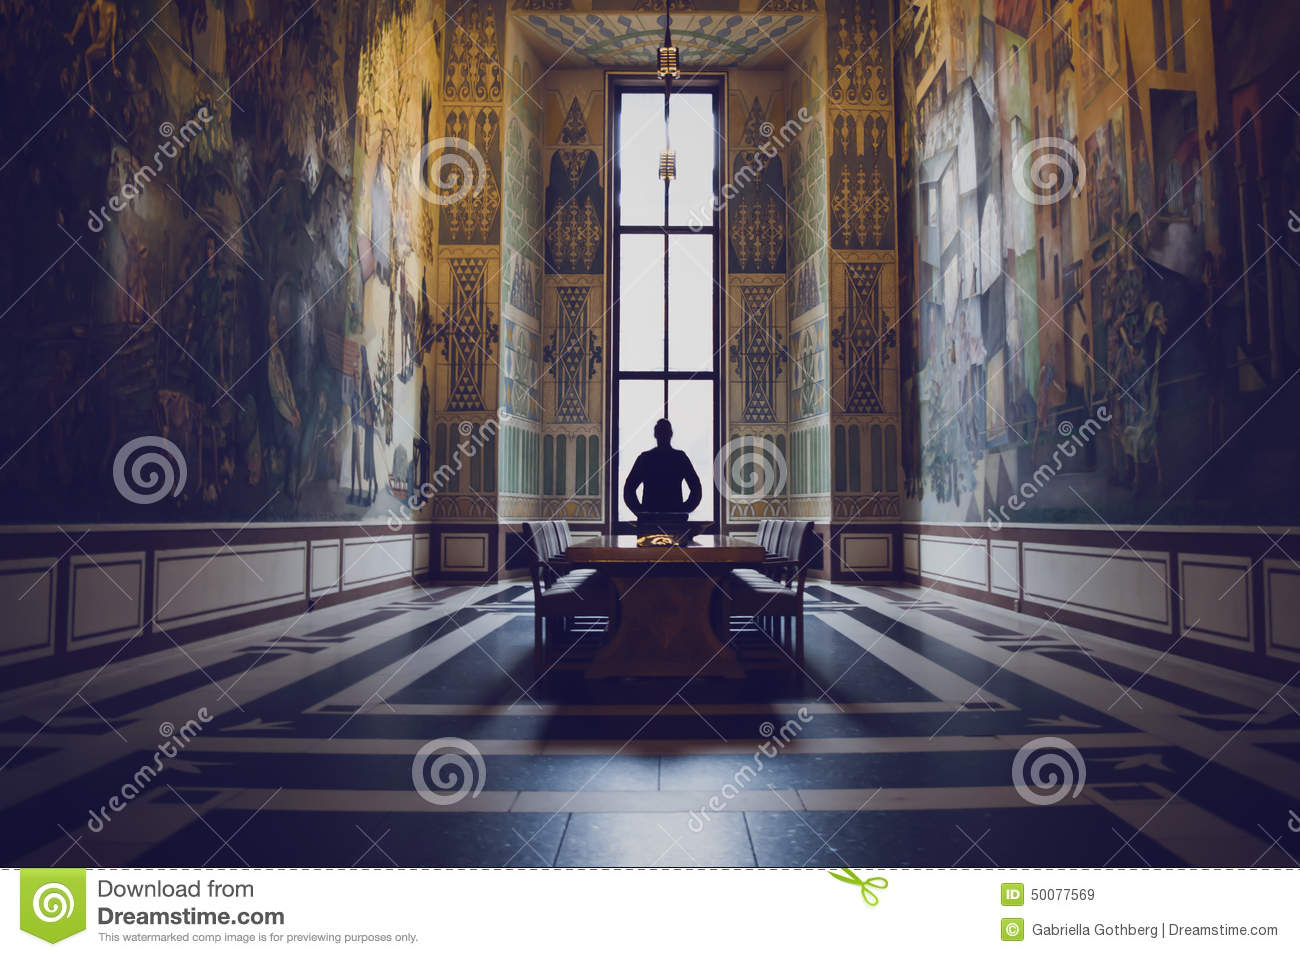 Silhouette of man in a grand hall